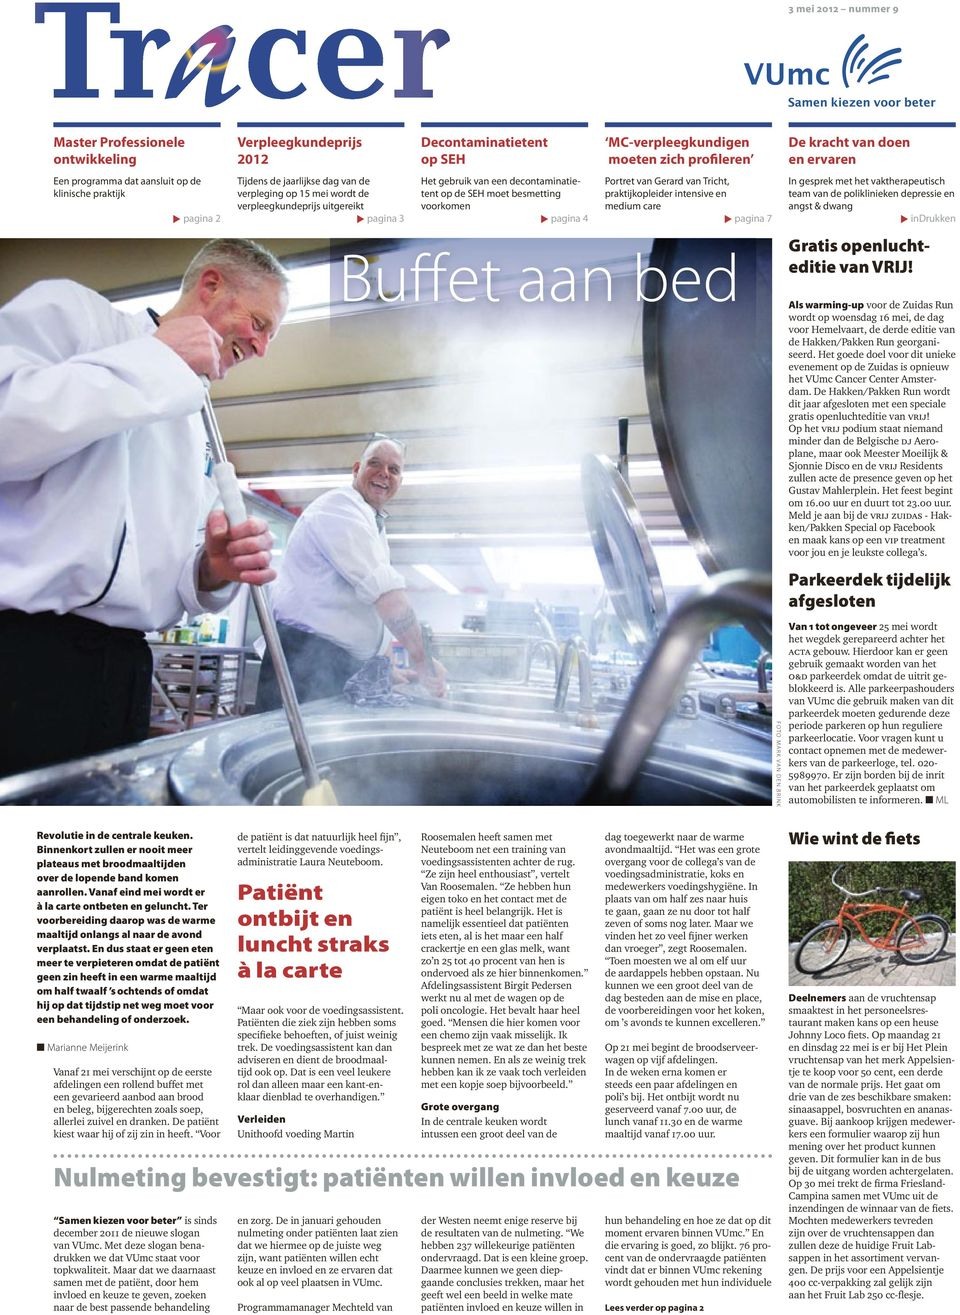 Portret van Gerard van Tricht, praktijkopleider intensive en medium care pagina 7 Buffet aan bed Foto Mark van den Brink De kracht van doen en ervaren In gesprek met het vaktherapeutisch team van de